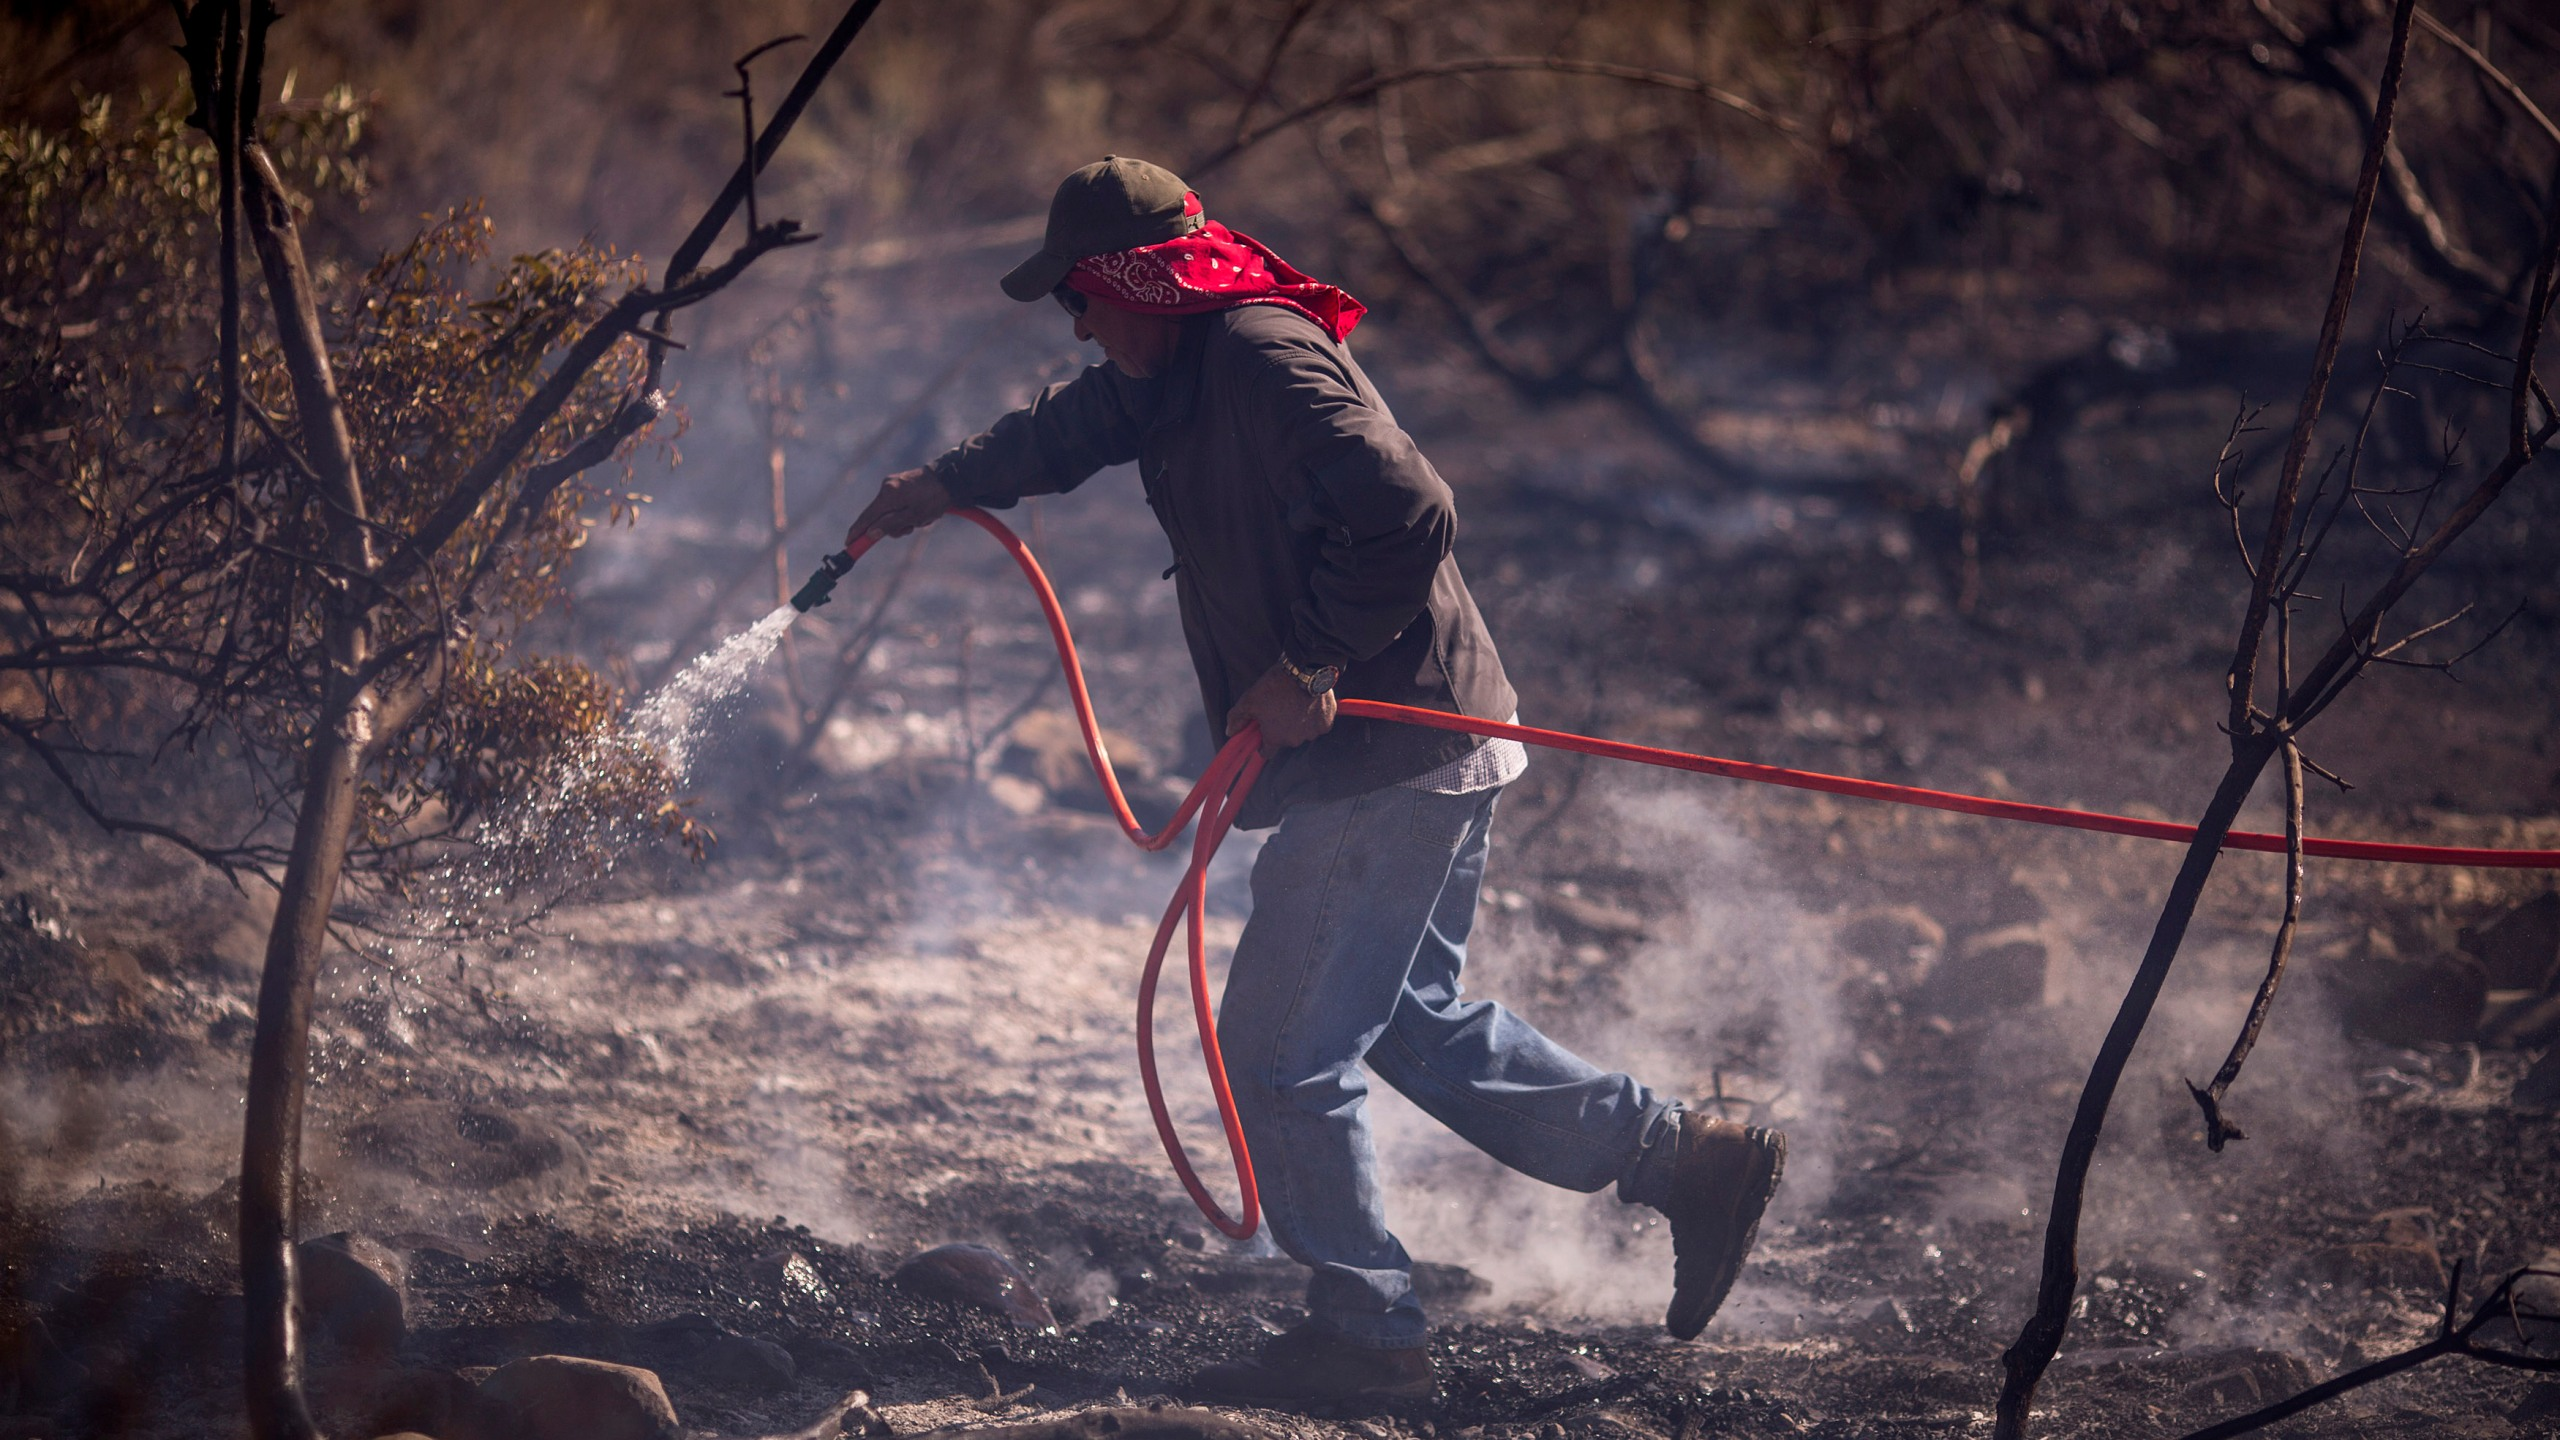 A farmworker fights the Thomas Fire on December 7, 2017 near Fillmore, California. (Credit: David McNew/Getty Images)